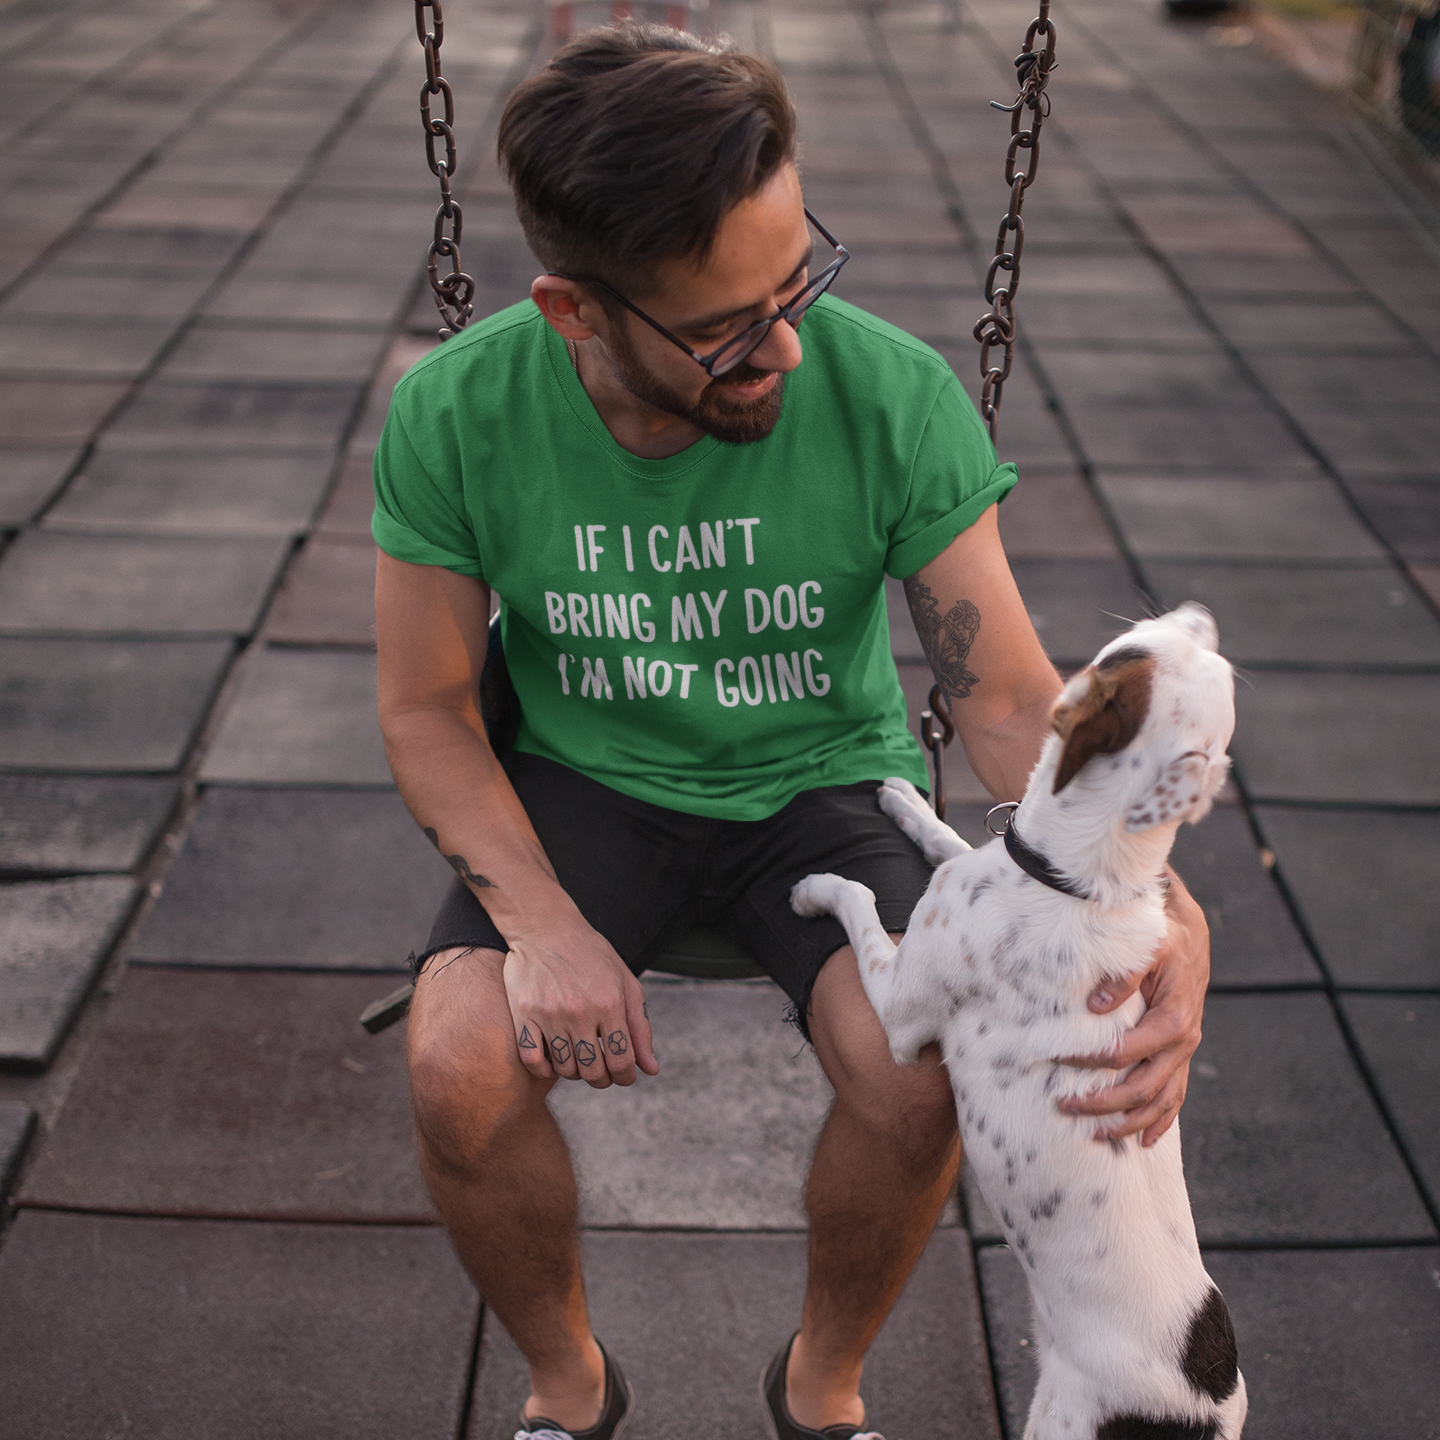 'If I can't bring my dog, I'm not going' adult shirt